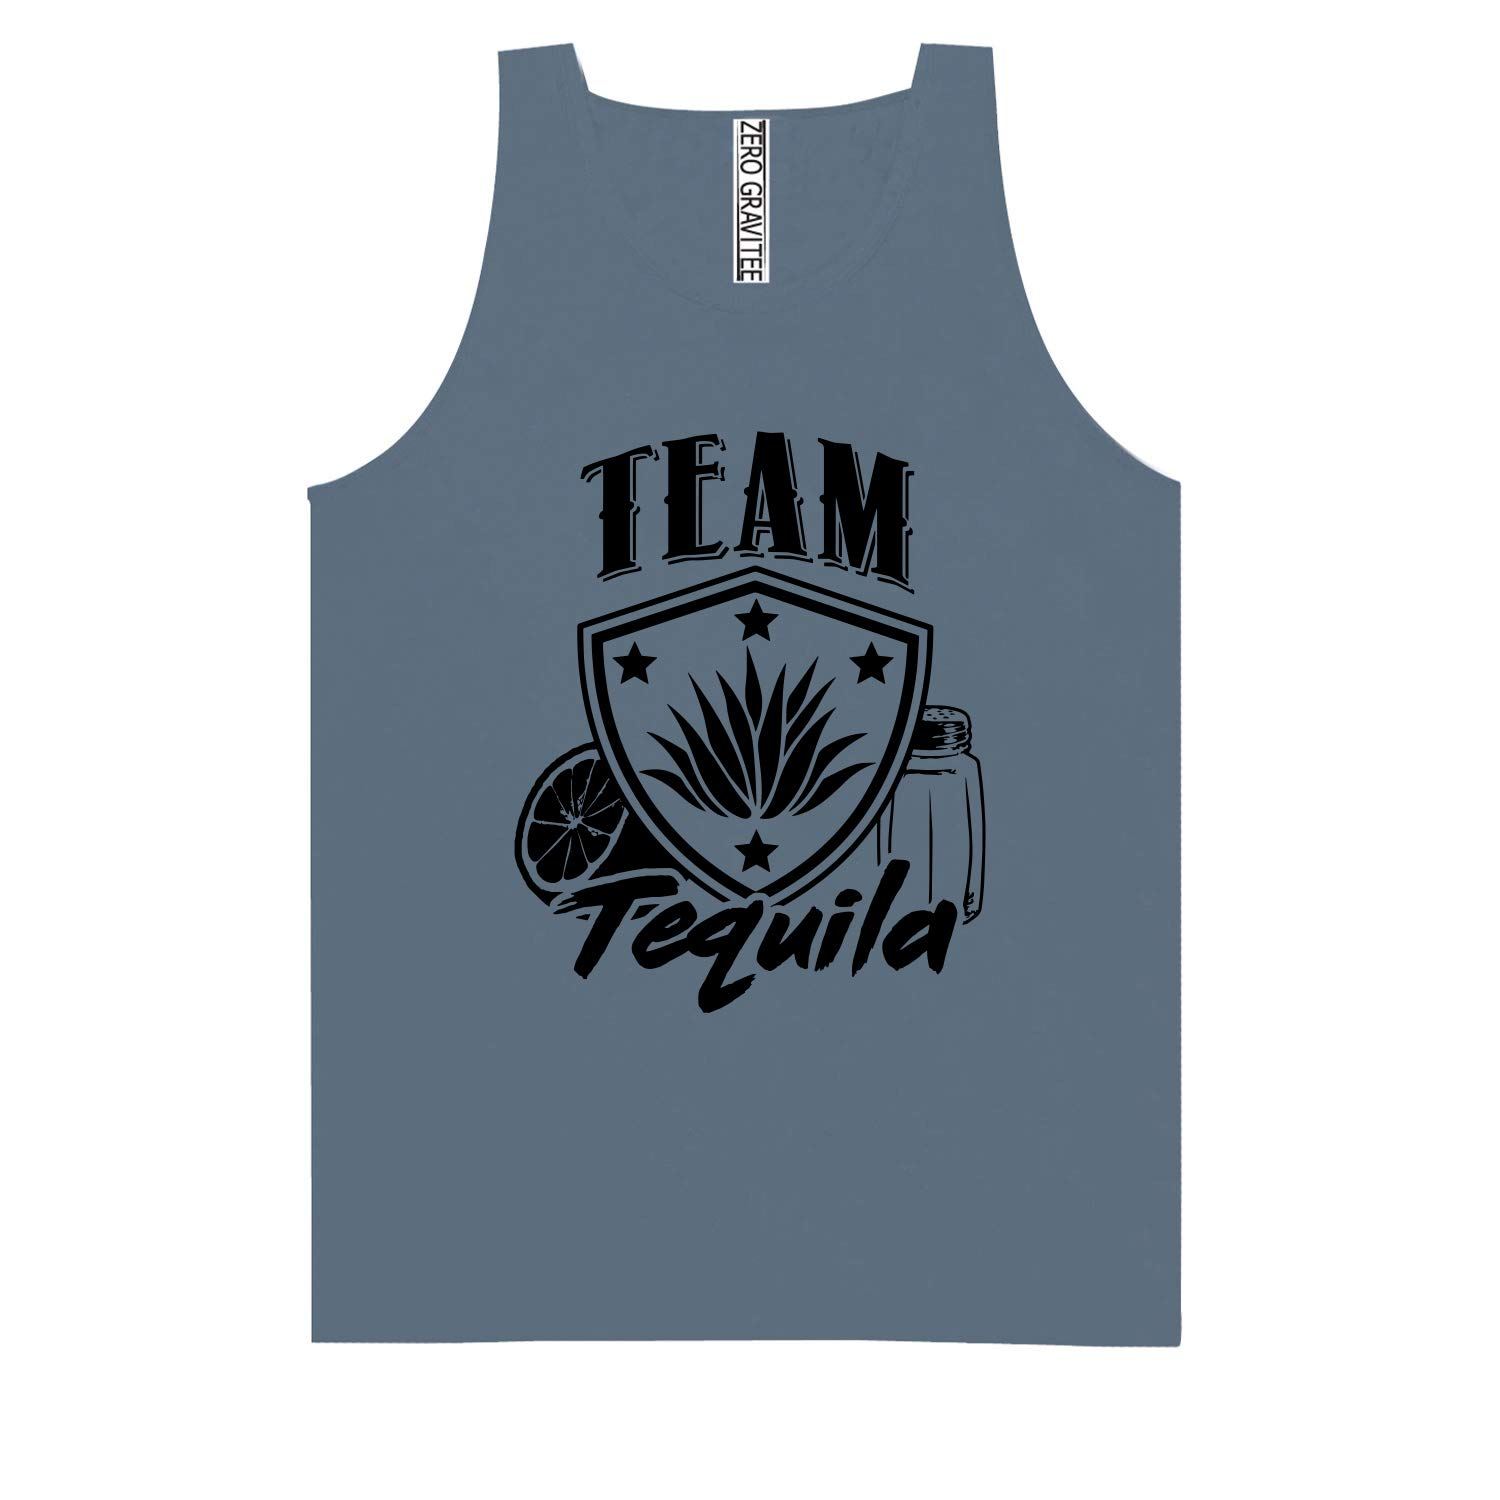 Team Tequila Adult Pigment Dye Tank Top